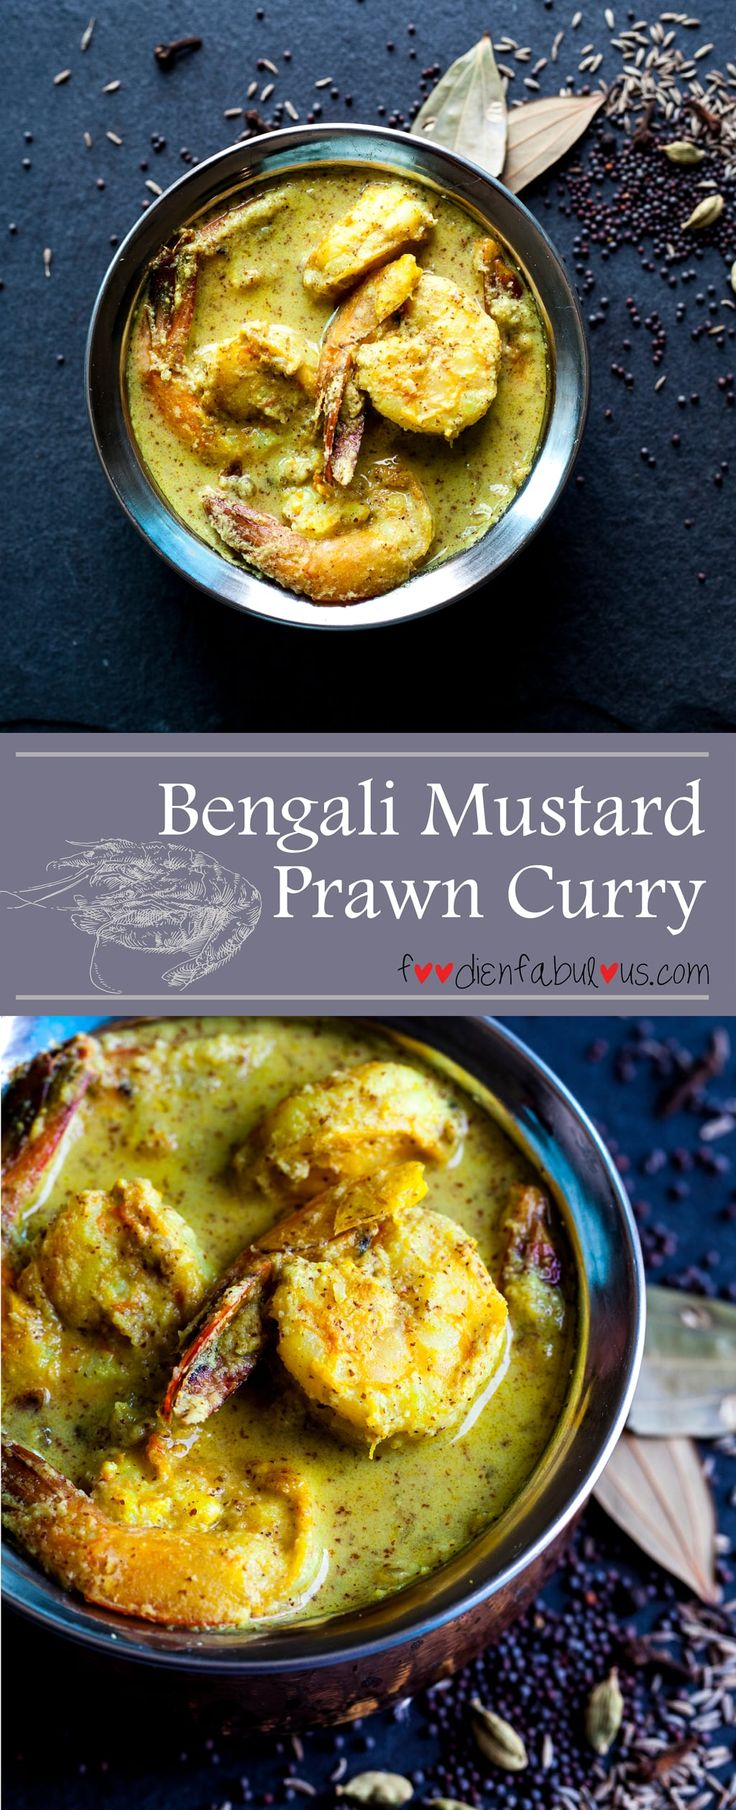 Every bite of this curry, the creaminess of the fresh coconut, the mellow…